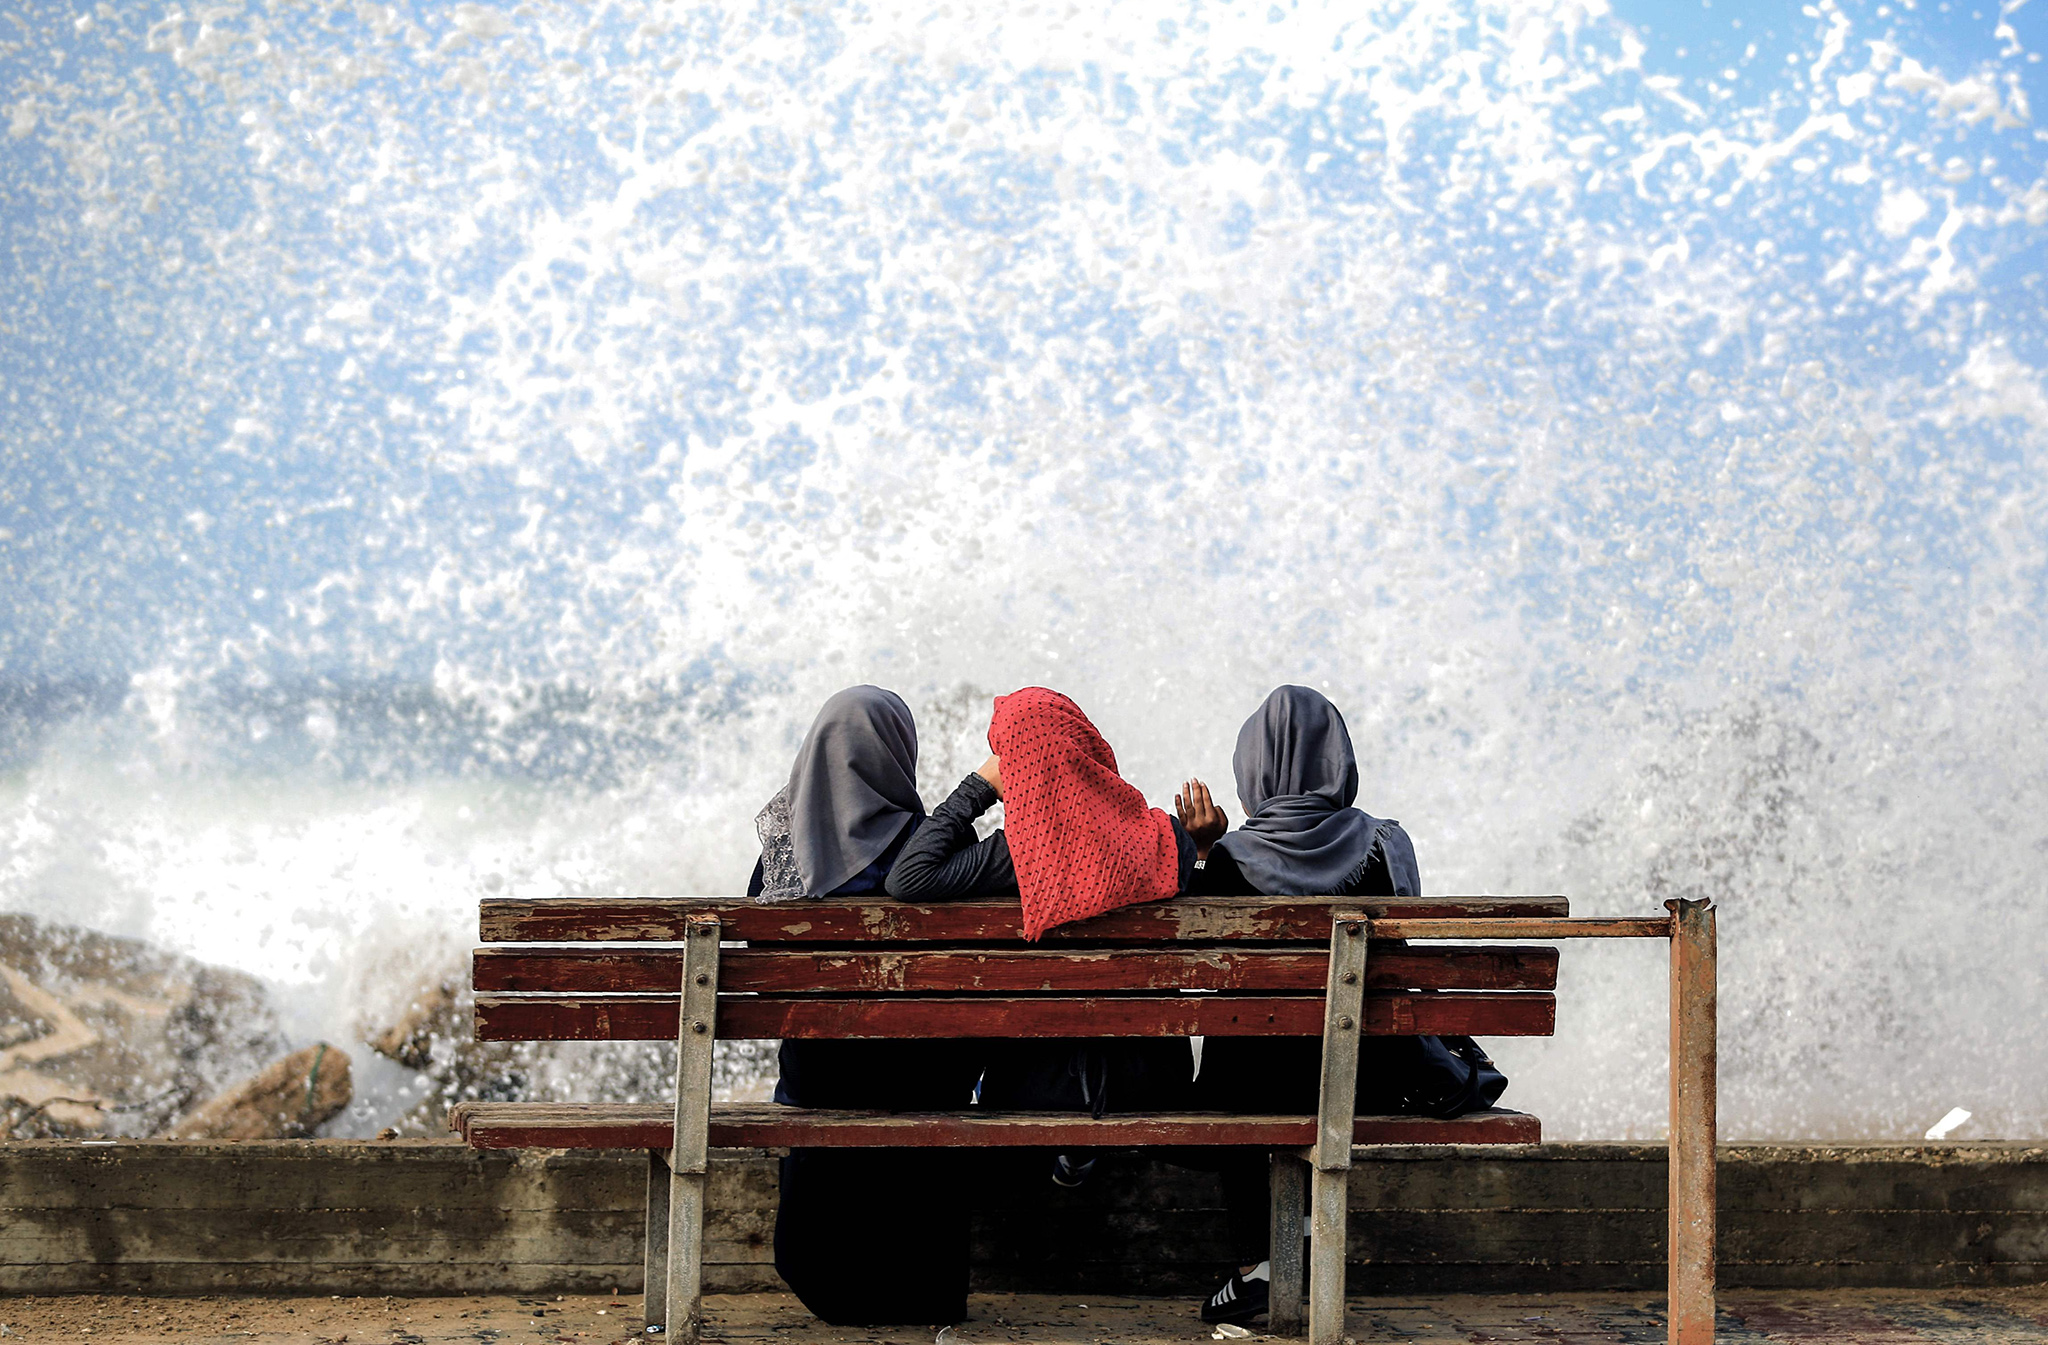 Three Palestinian women sit on a beachfront as a wave comes rushing by in Gaza City on November 17, 2016. / AFP PHOTO / MOHAMMED ABEDMOHAMMED ABED/AFP/Getty Images